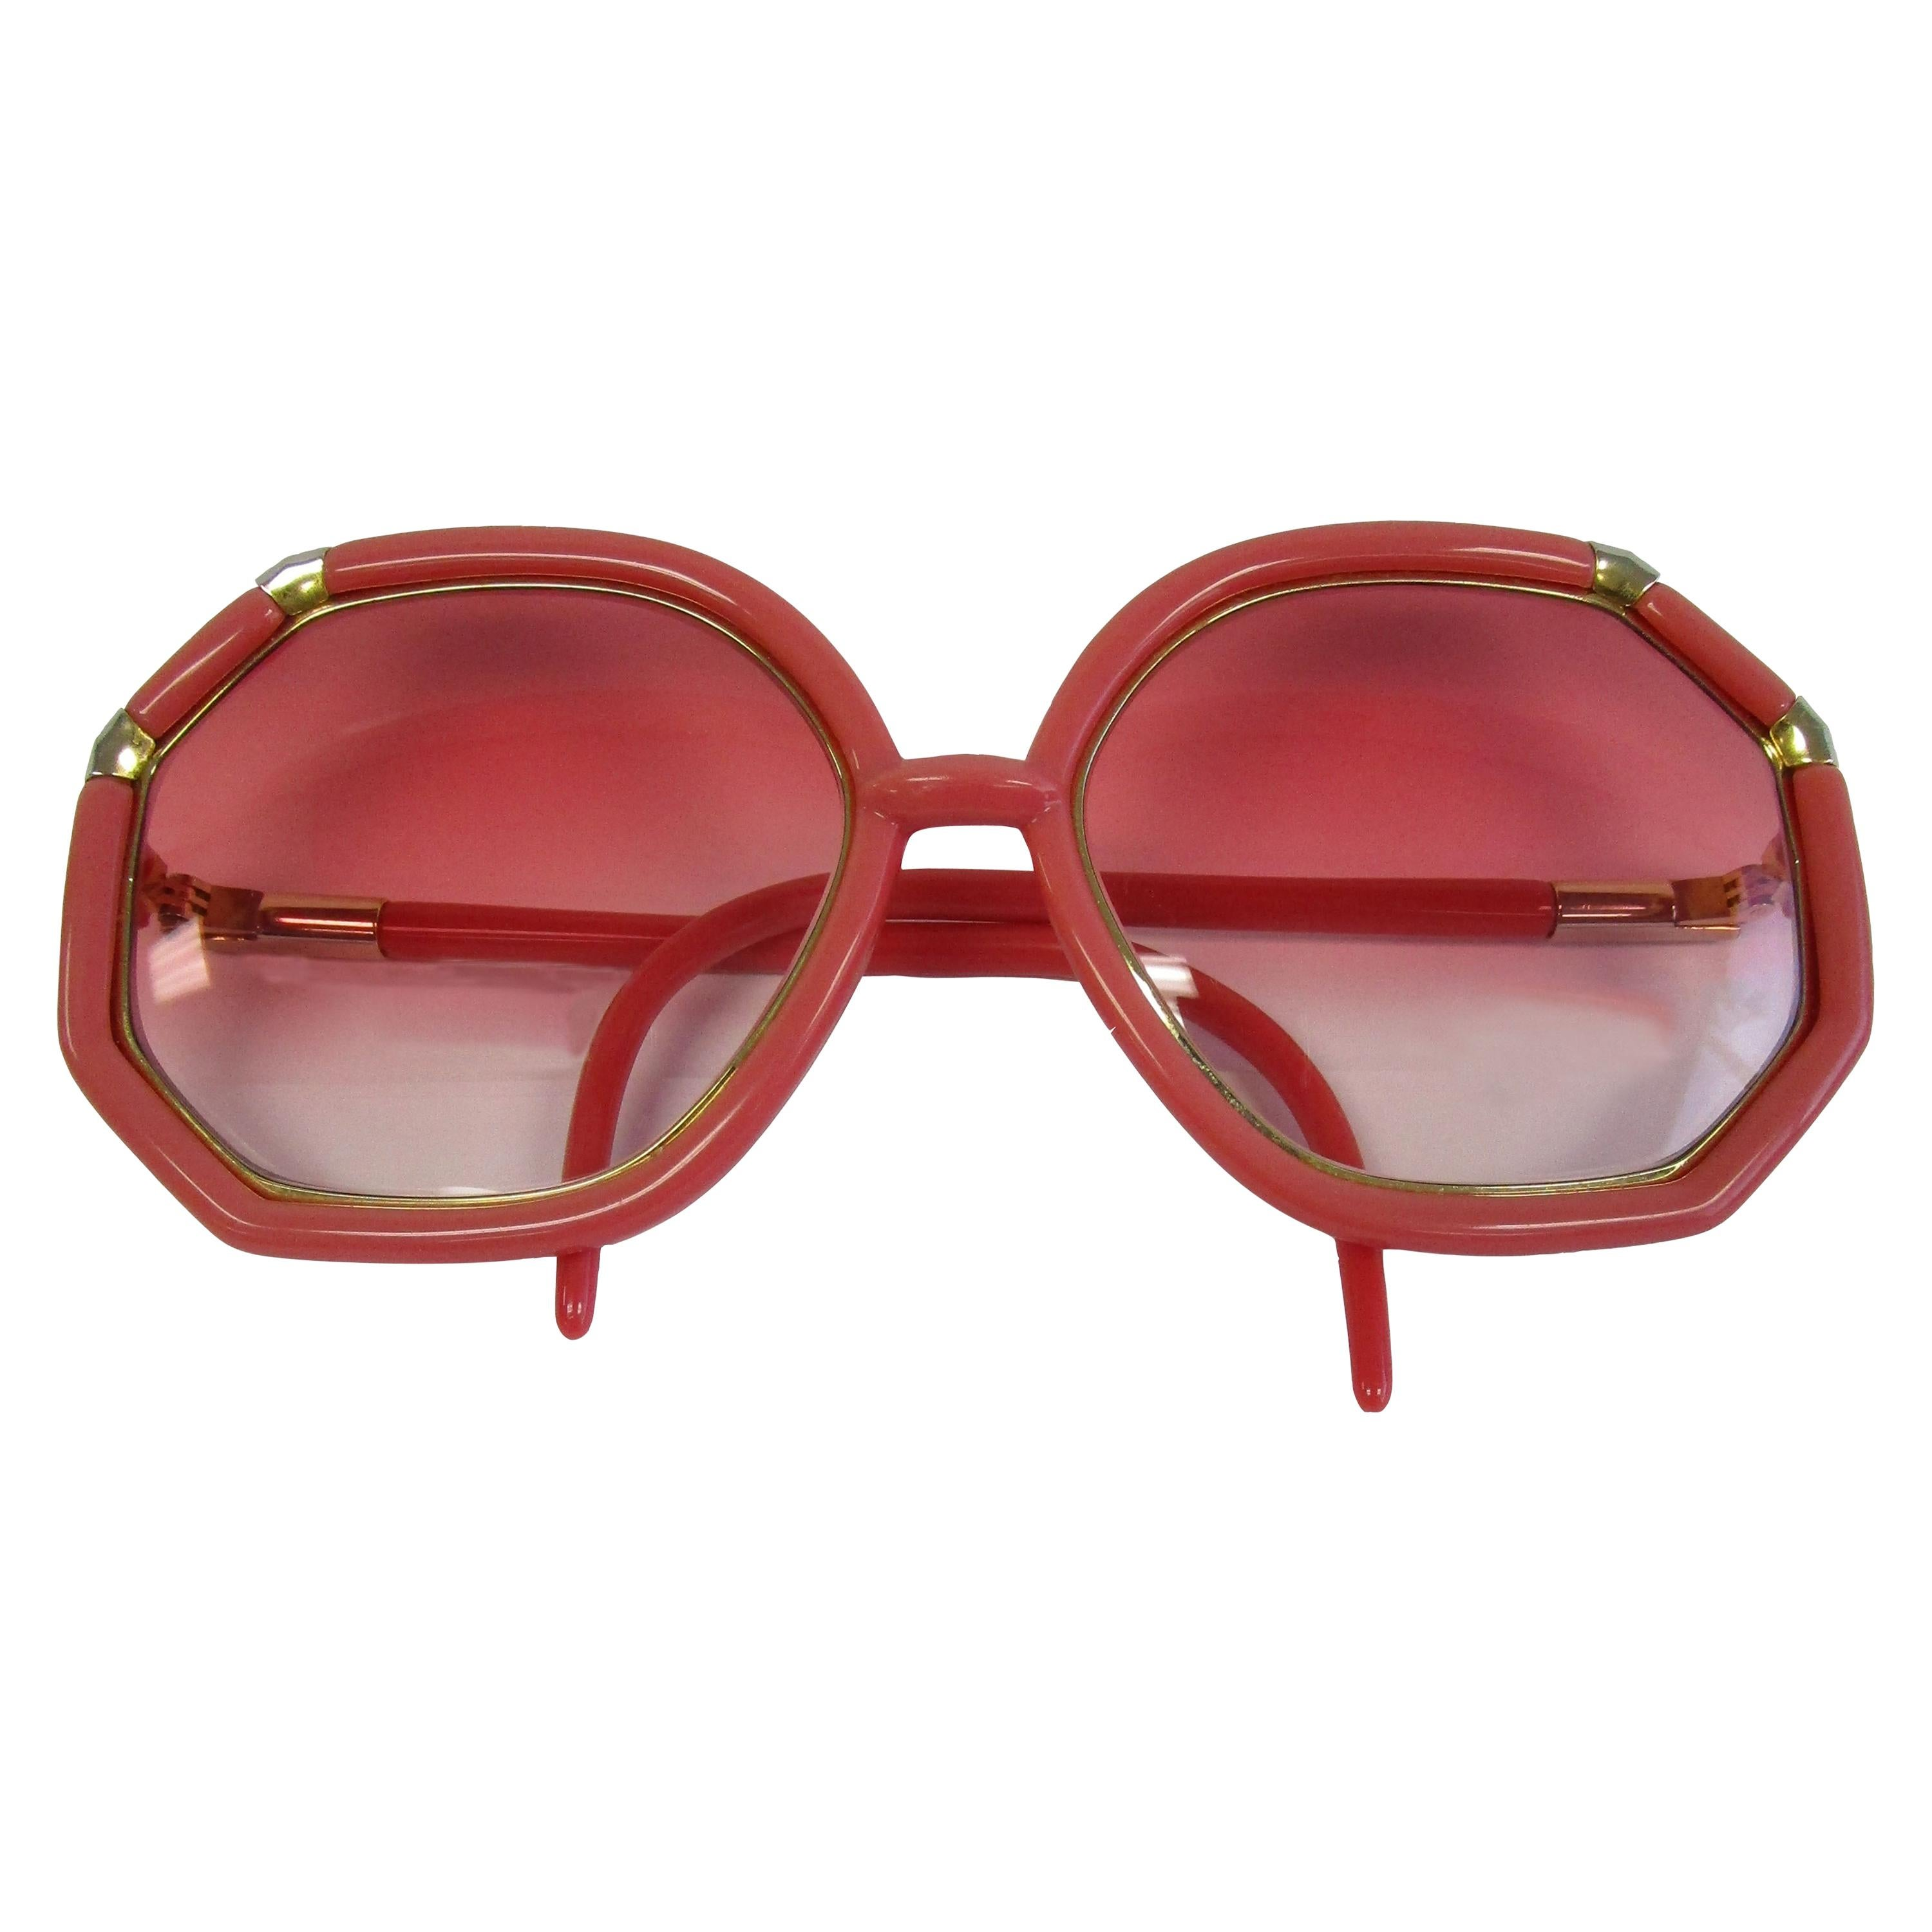 1970s Red and Gold Sunglasses with Rose Gradient Lenses